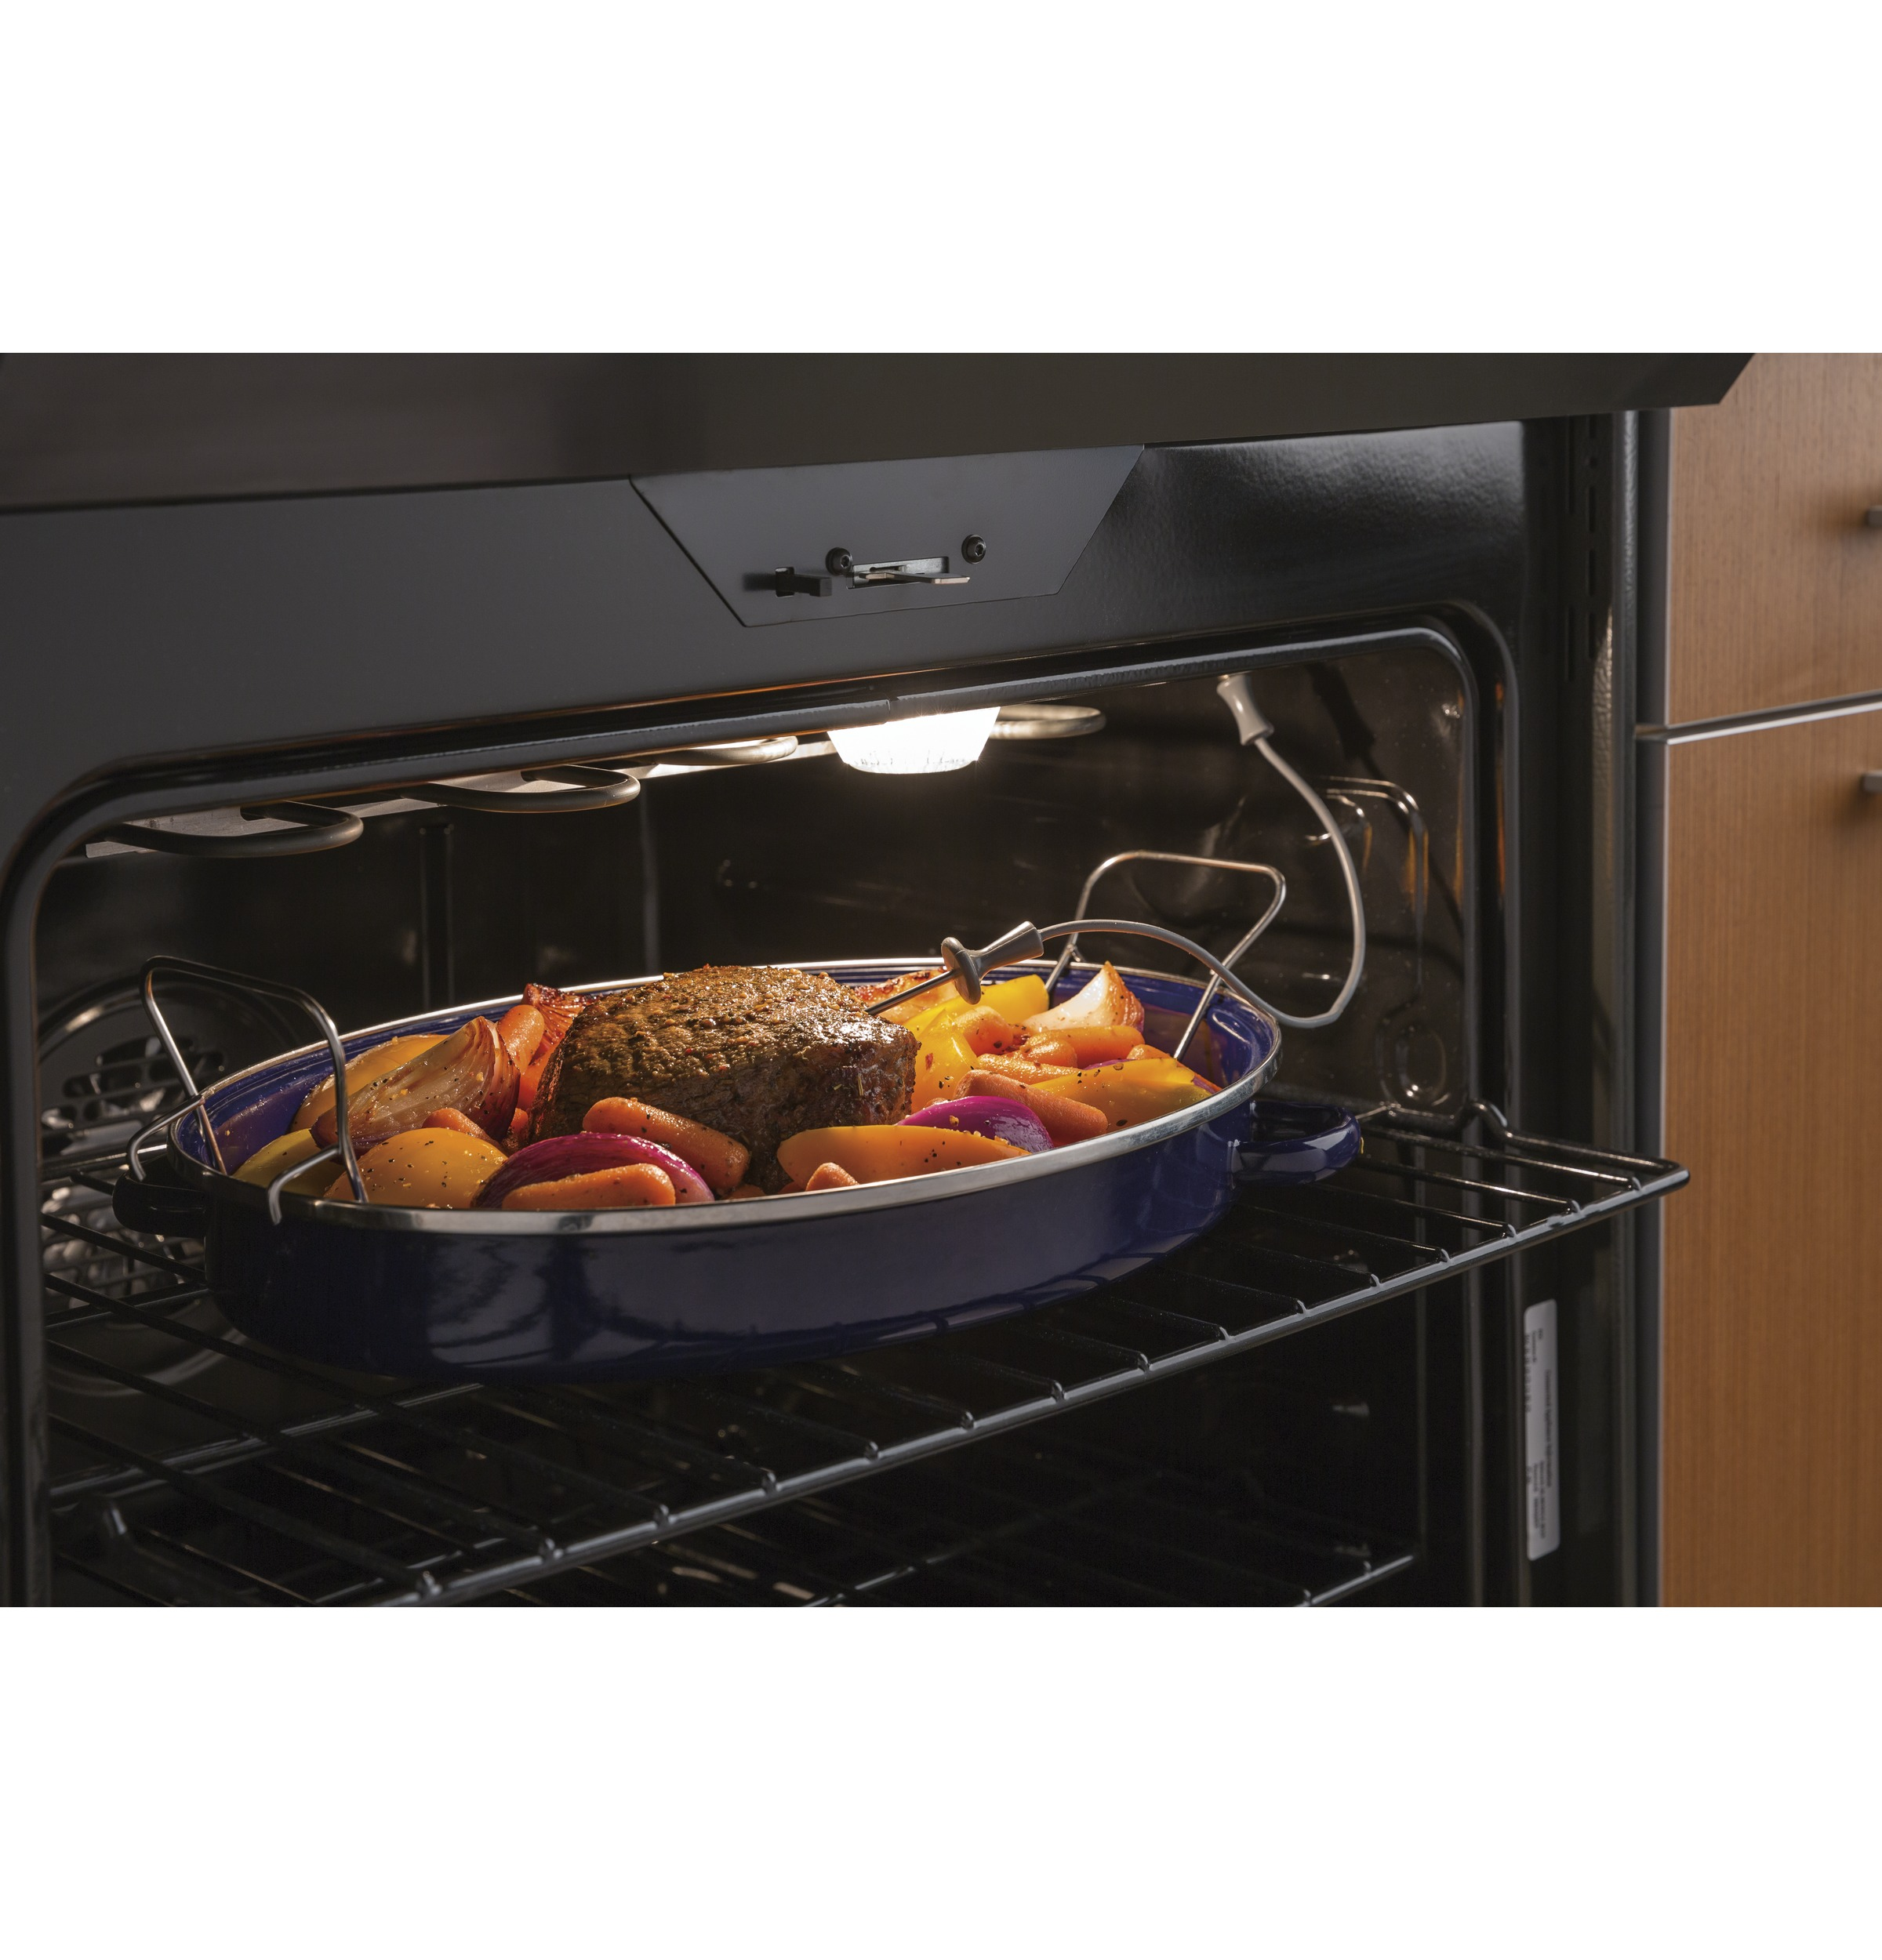 "Model: PHS930SLSS | GE Profile GE Profile™ Series 30"" Slide-In Front Control Induction and Convection Range"